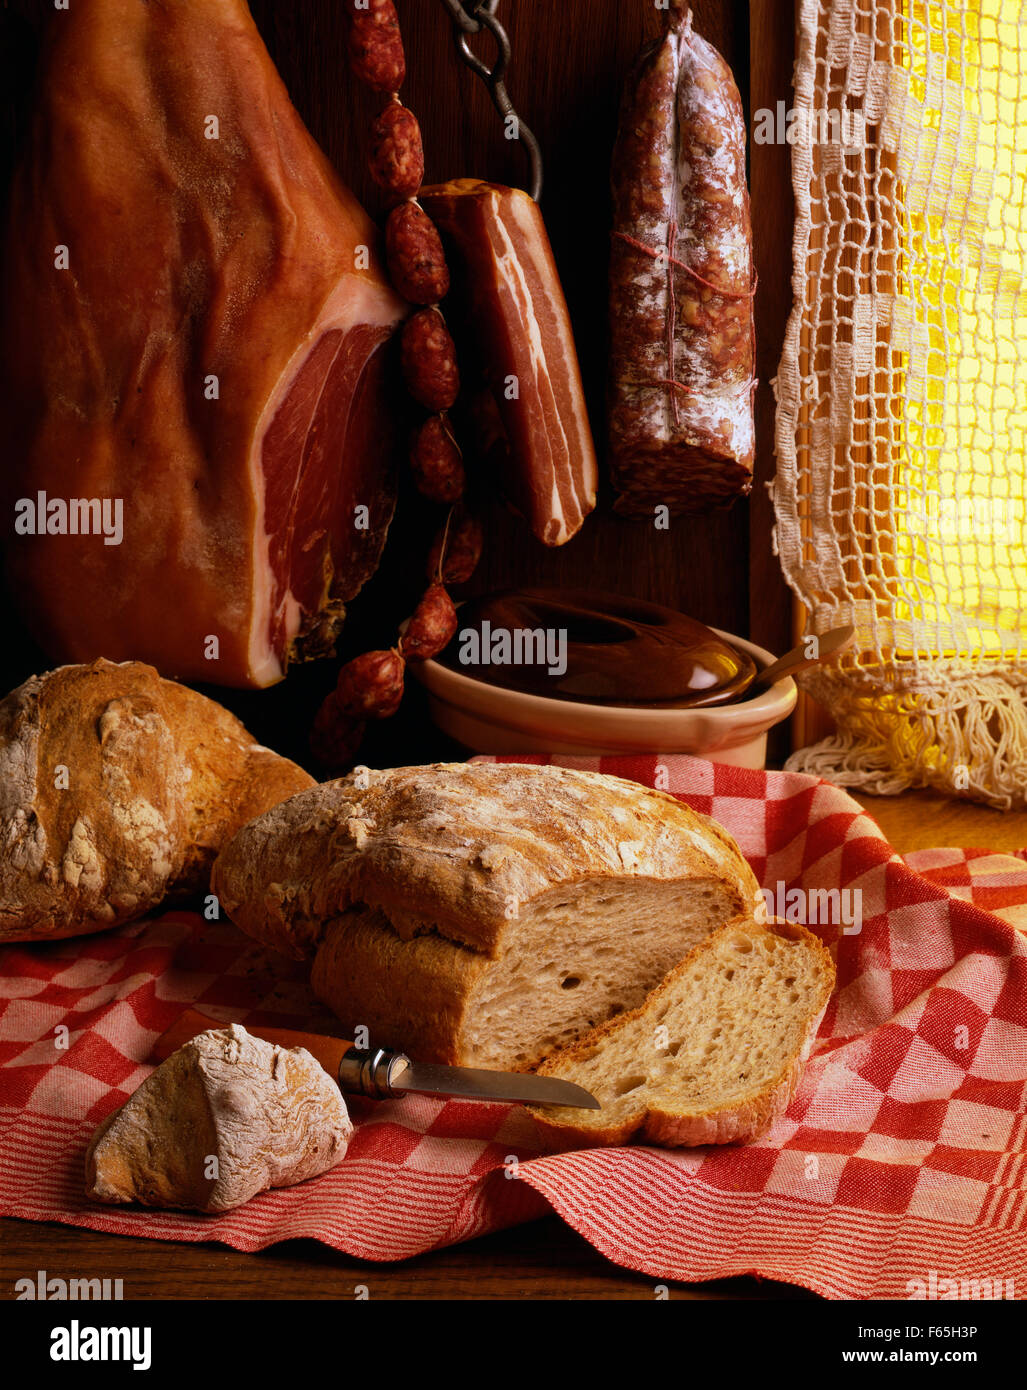 Cooked pork meats and bread Stock Photo